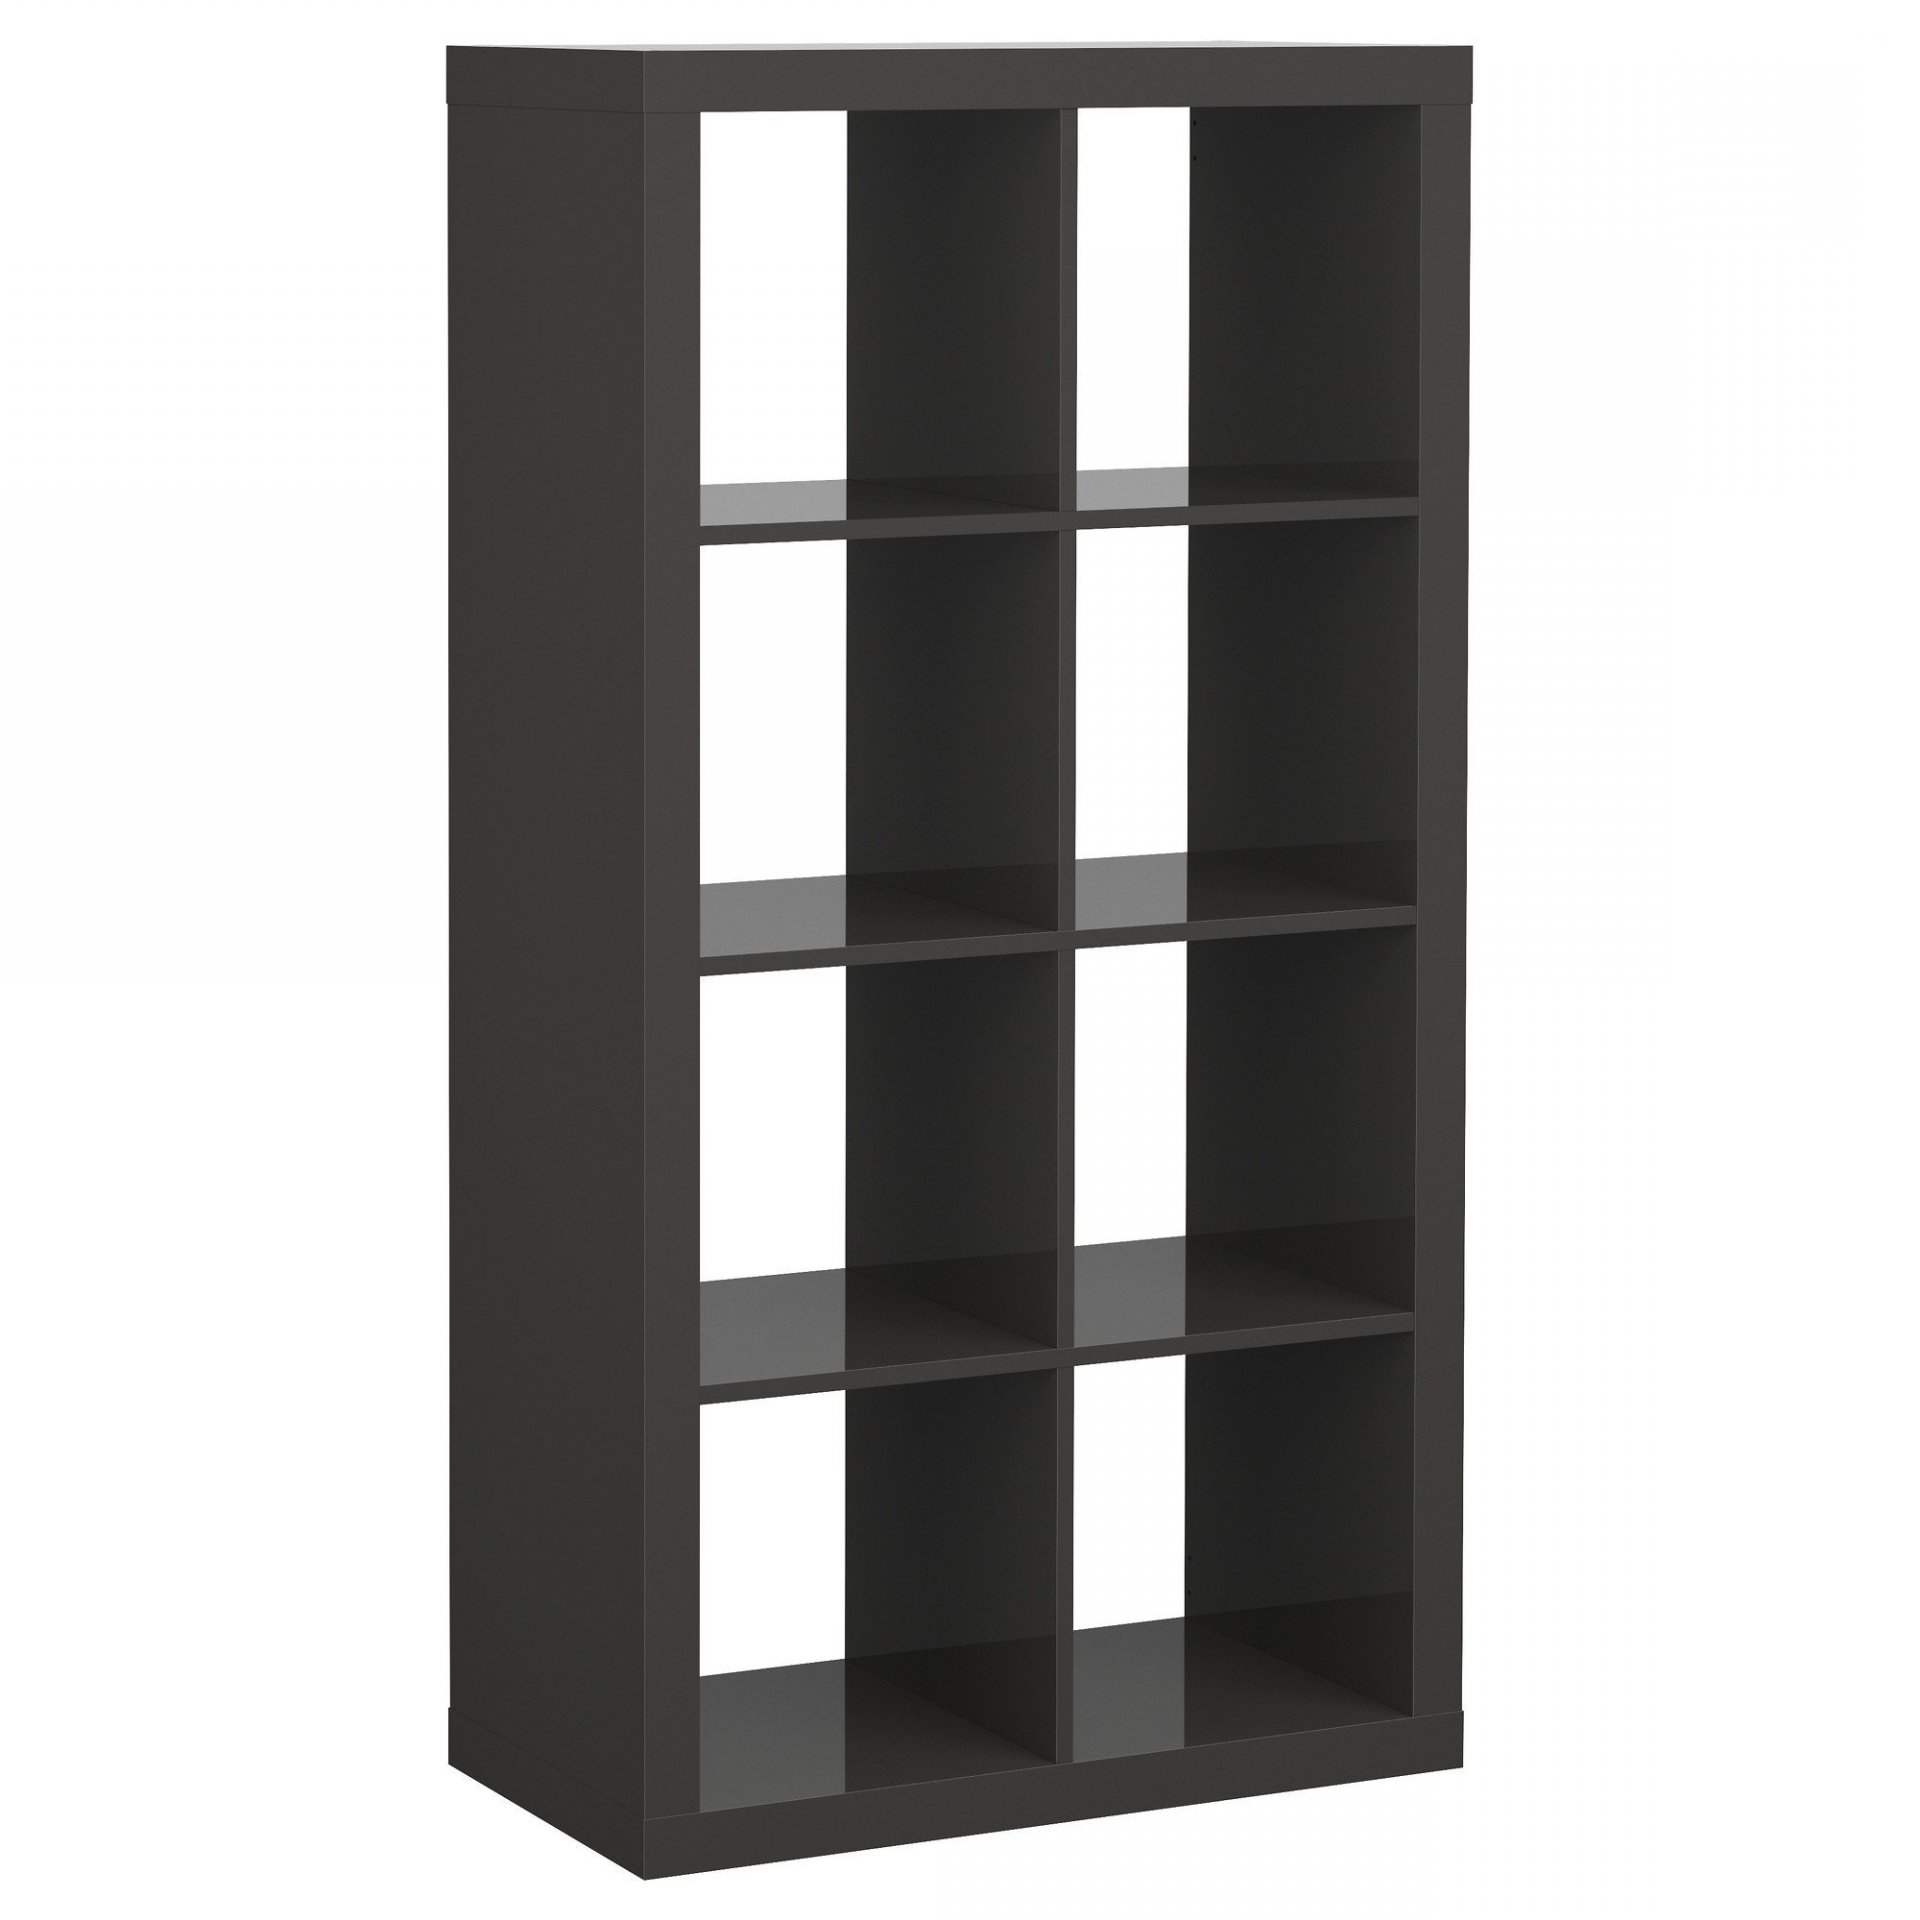 Most Popular Target Book Shelves Stafford 2 Shelf Bookcase Target Target Room For Target Room Essentials Bookcases (View 14 of 15)